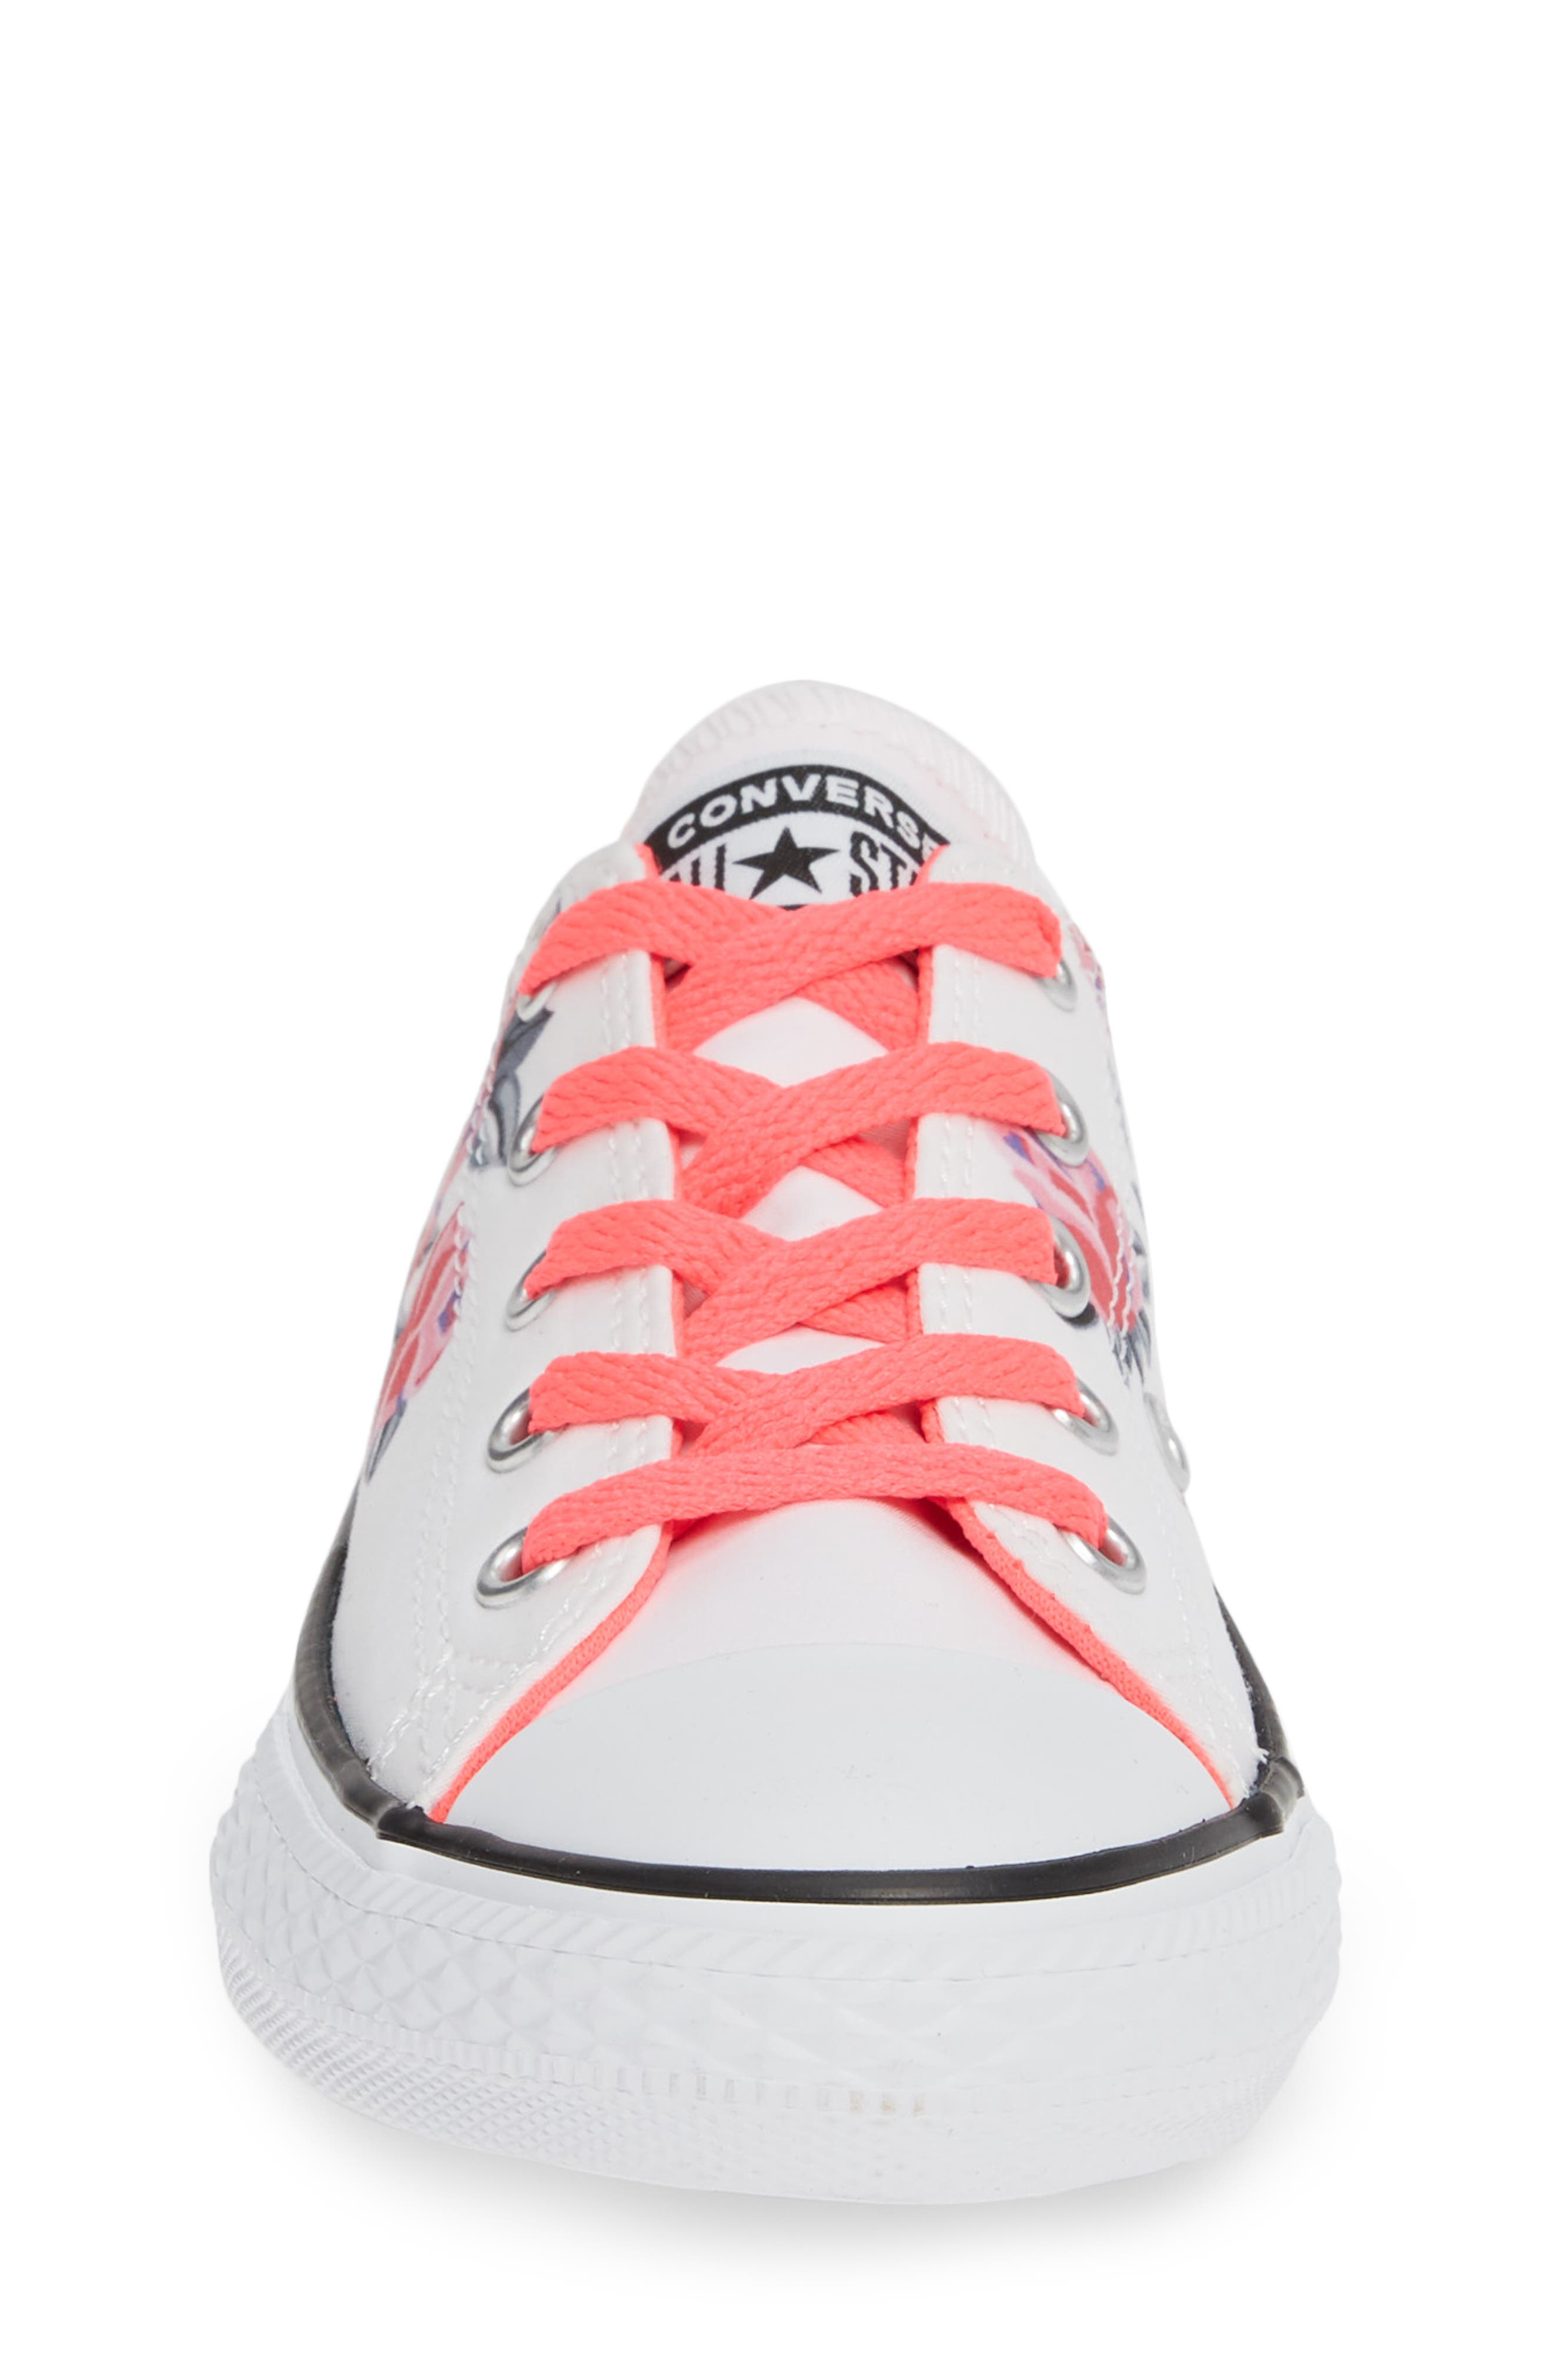 Chuck Taylor<sup>®</sup> All Star<sup>®</sup> Low Top Sneaker,                             Alternate thumbnail 4, color,                             WHITE/ RACER PINK/ BLACK